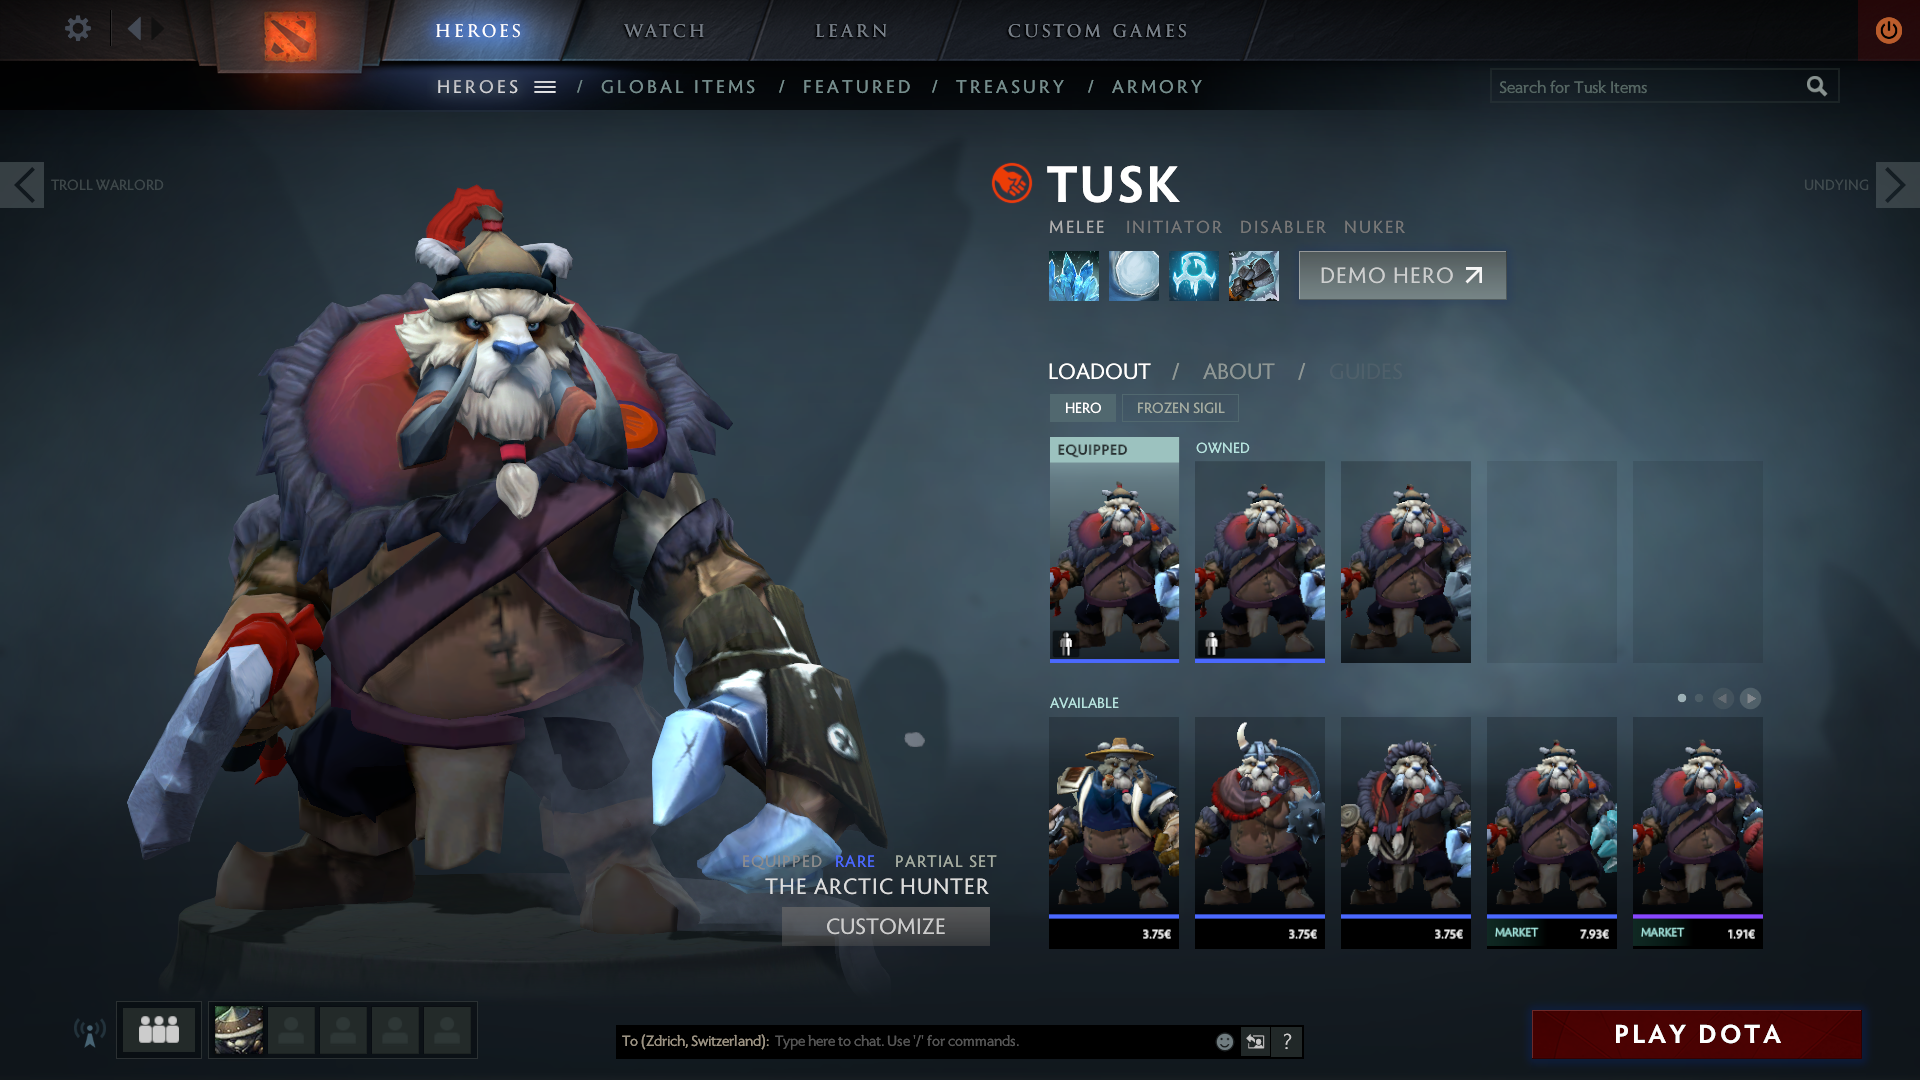 dota 2 good video game interface screenshots